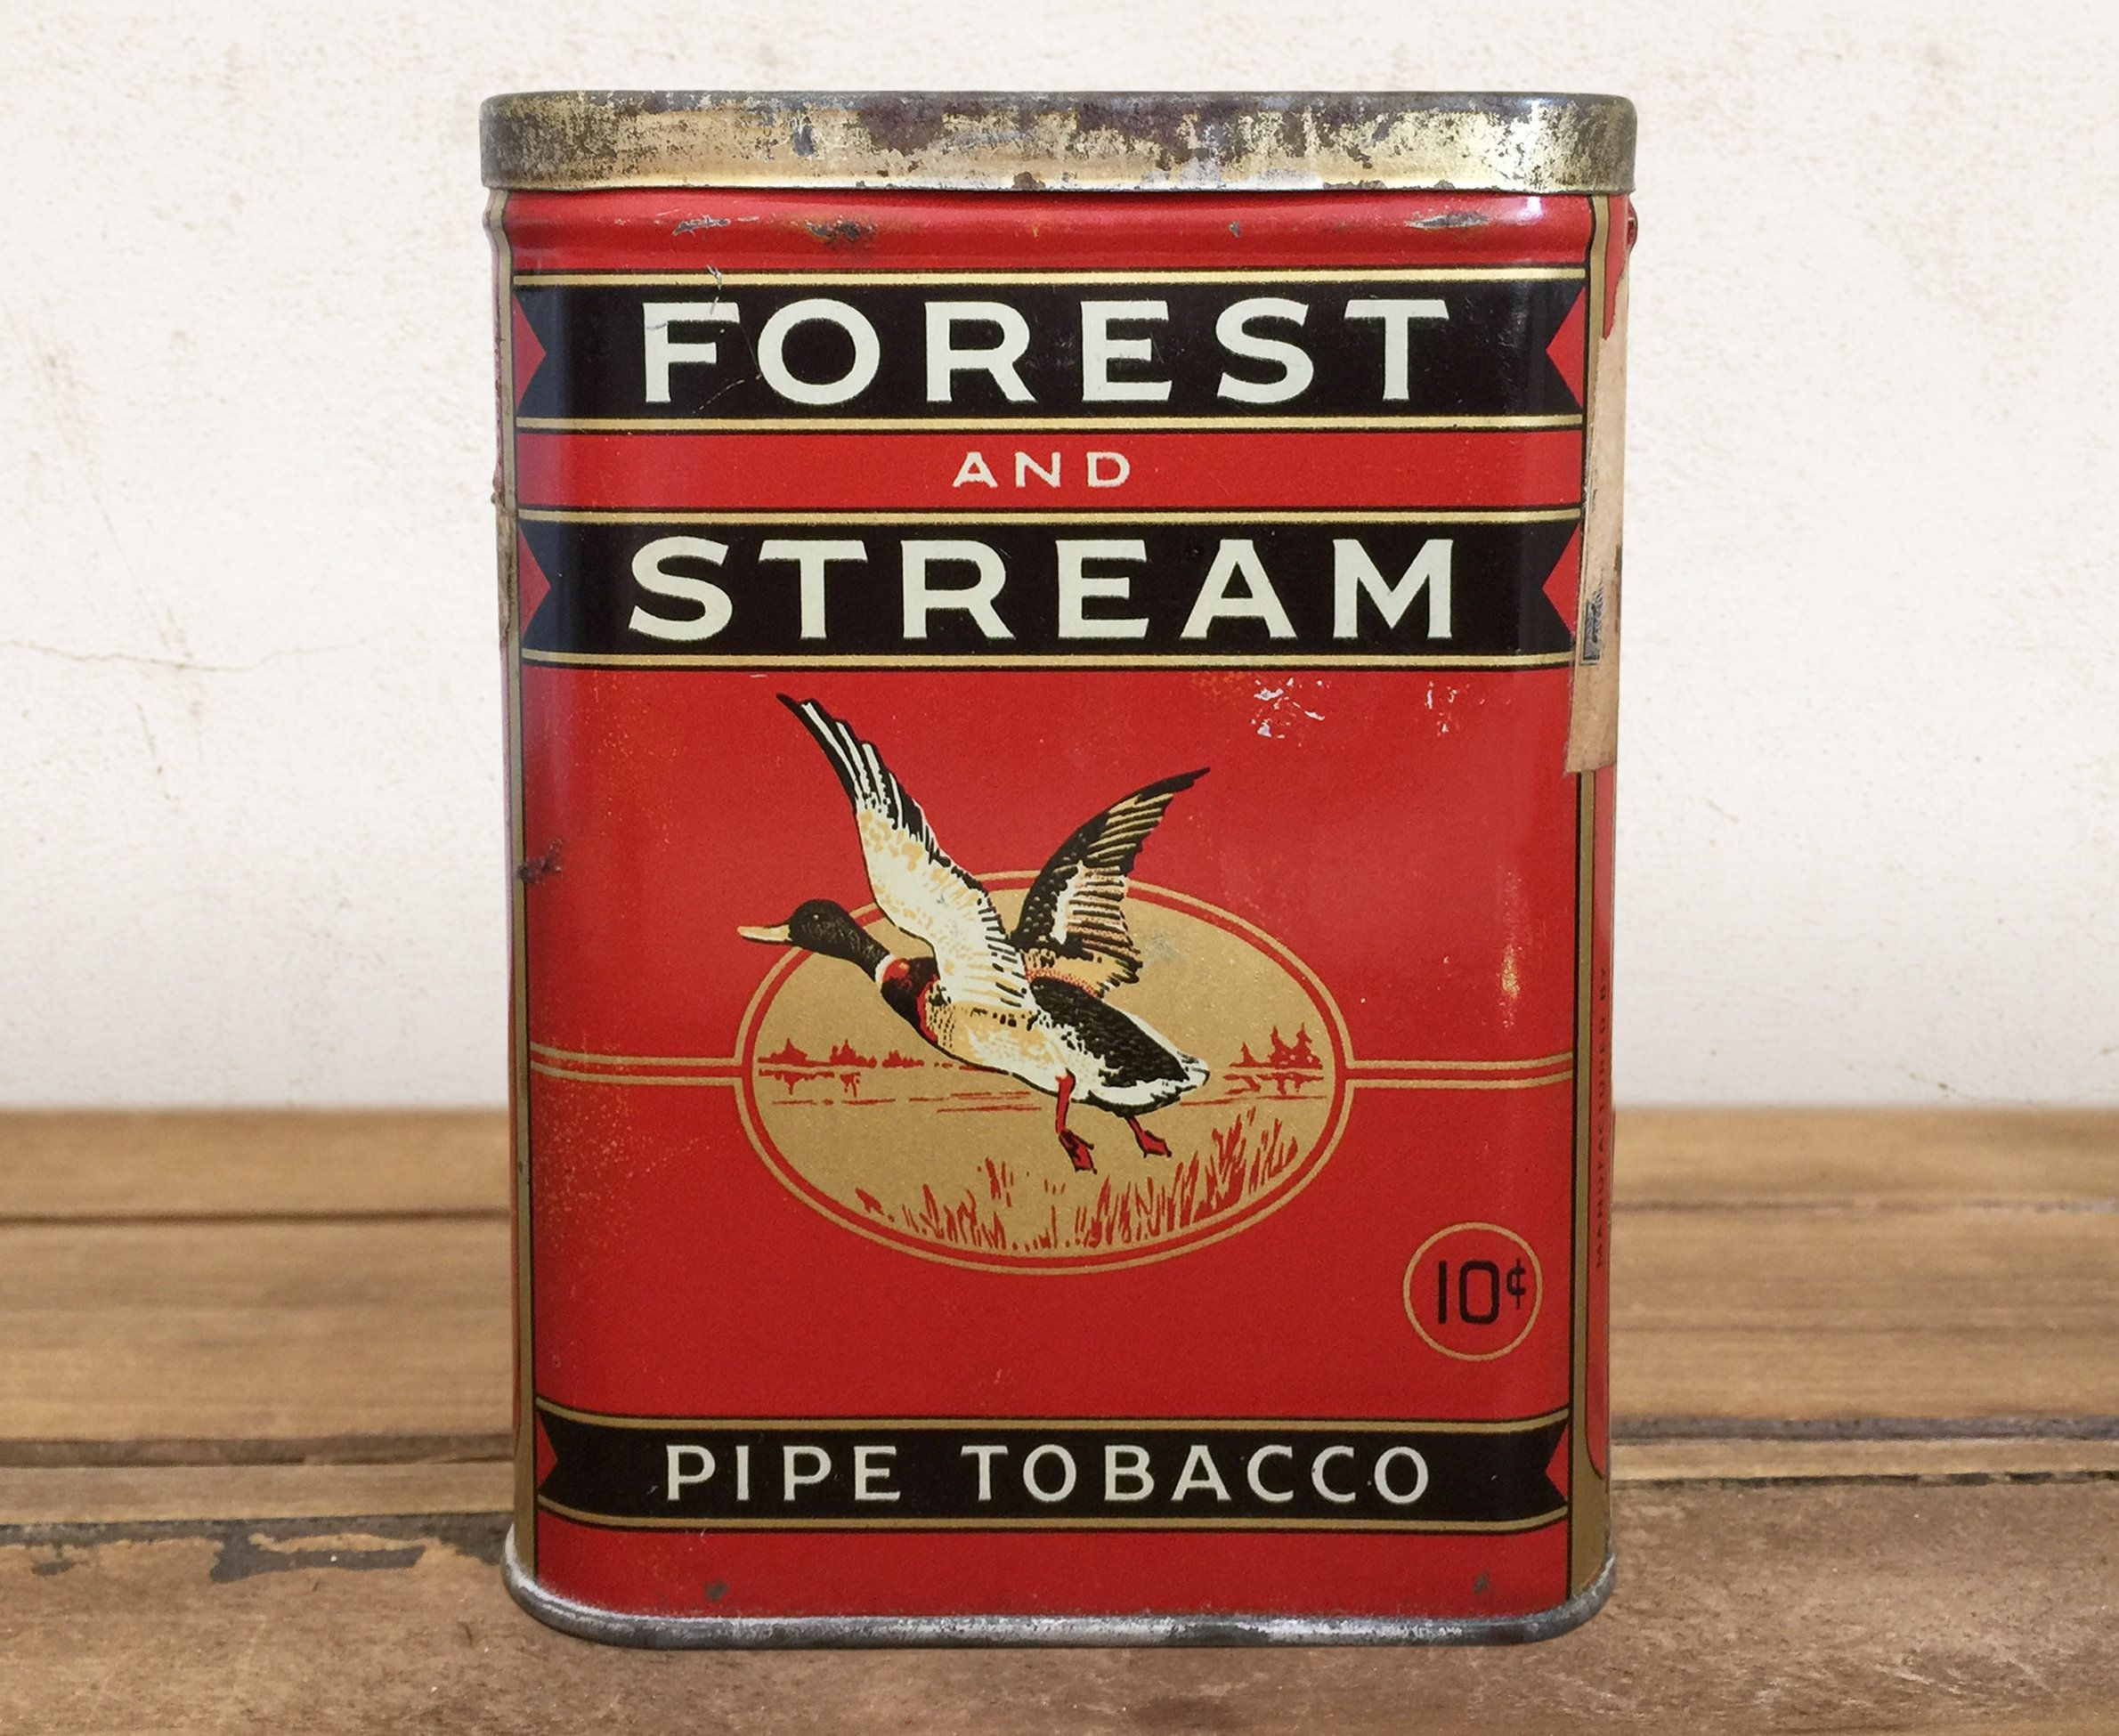 Vintage Tobacco Tin Forest And Stream Pocket Tobacco Can Etsy In 2020 Rustic Shelves Decor Tin Antiques